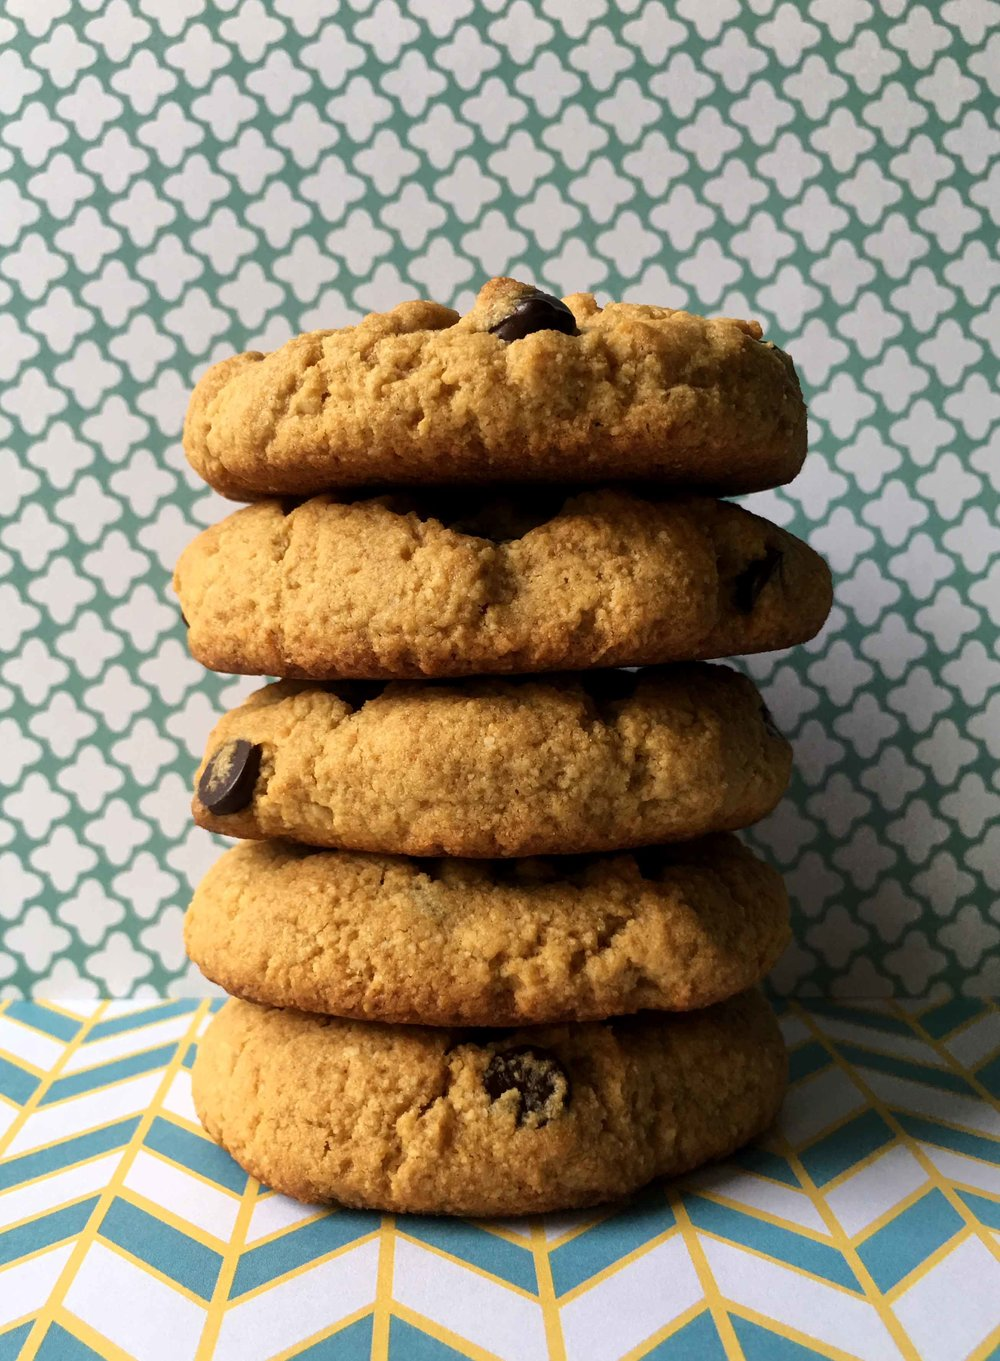 Low Carb Peanut Butter Chocolate Chip Cookies Recipe